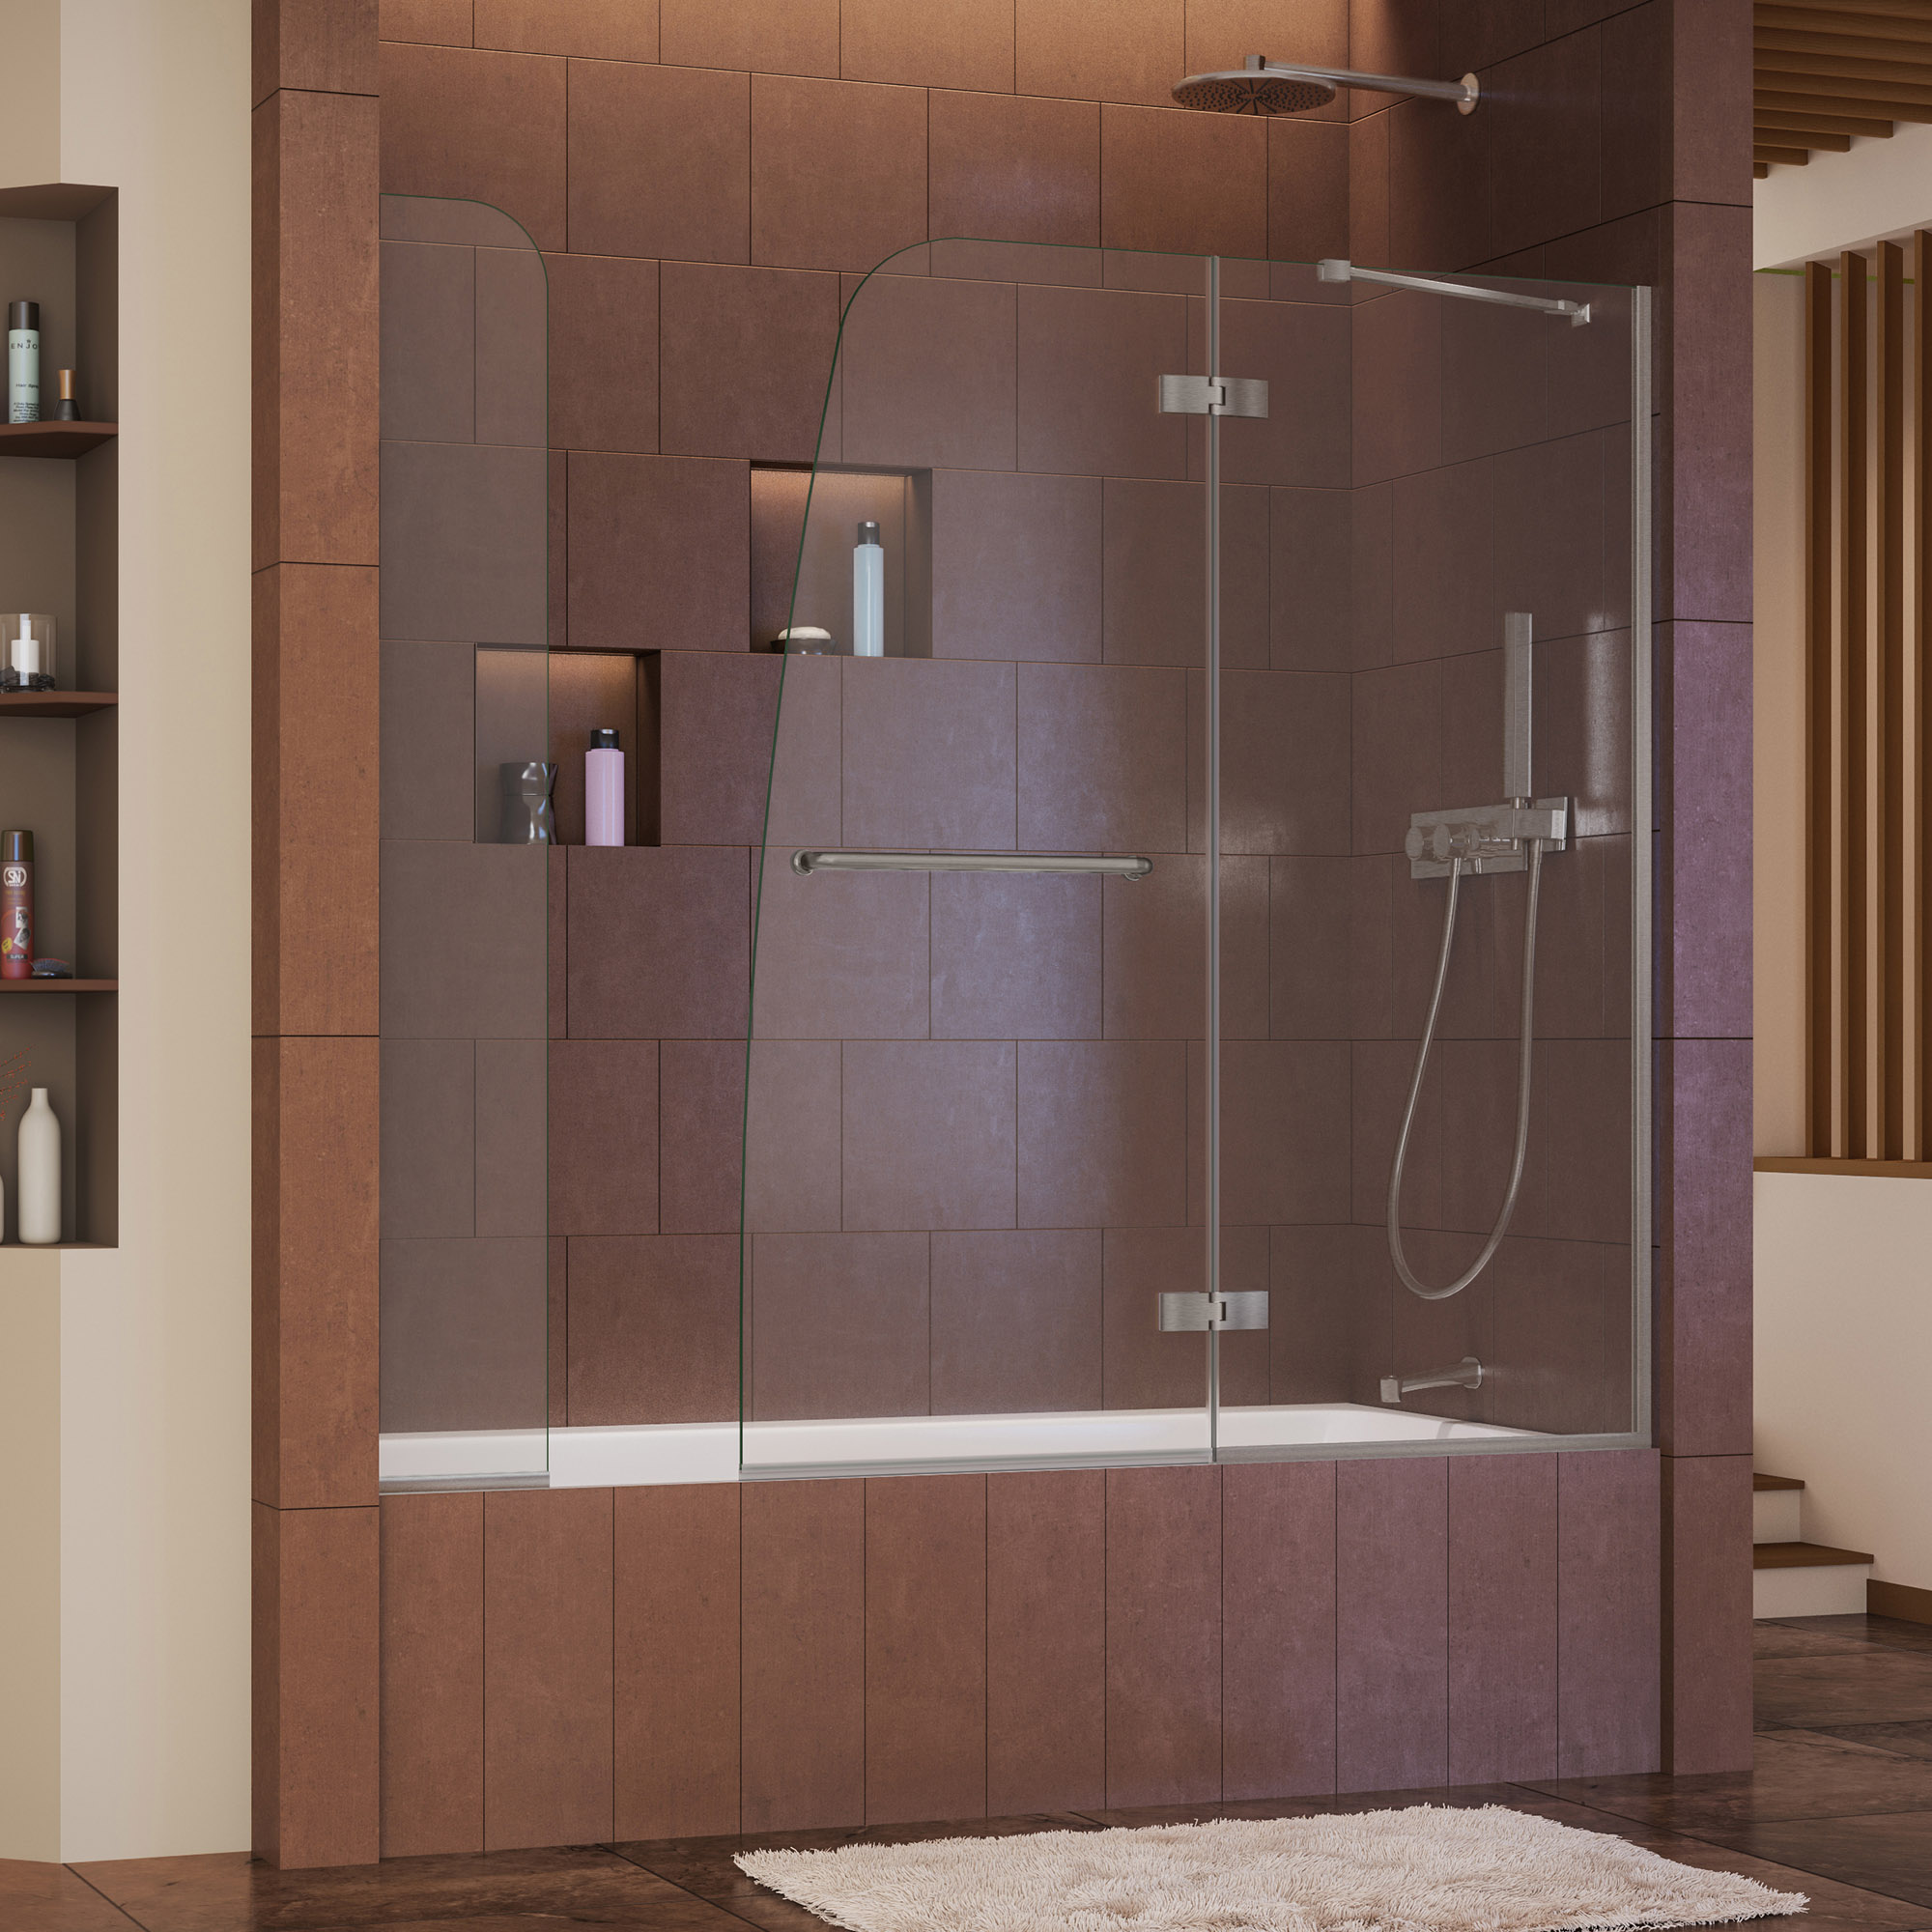 DreamLine Aqua Ultra 57-60 in. W x 58 in. H Frameless Hinged Tub Door with Extender Panel in Brushed Nickel